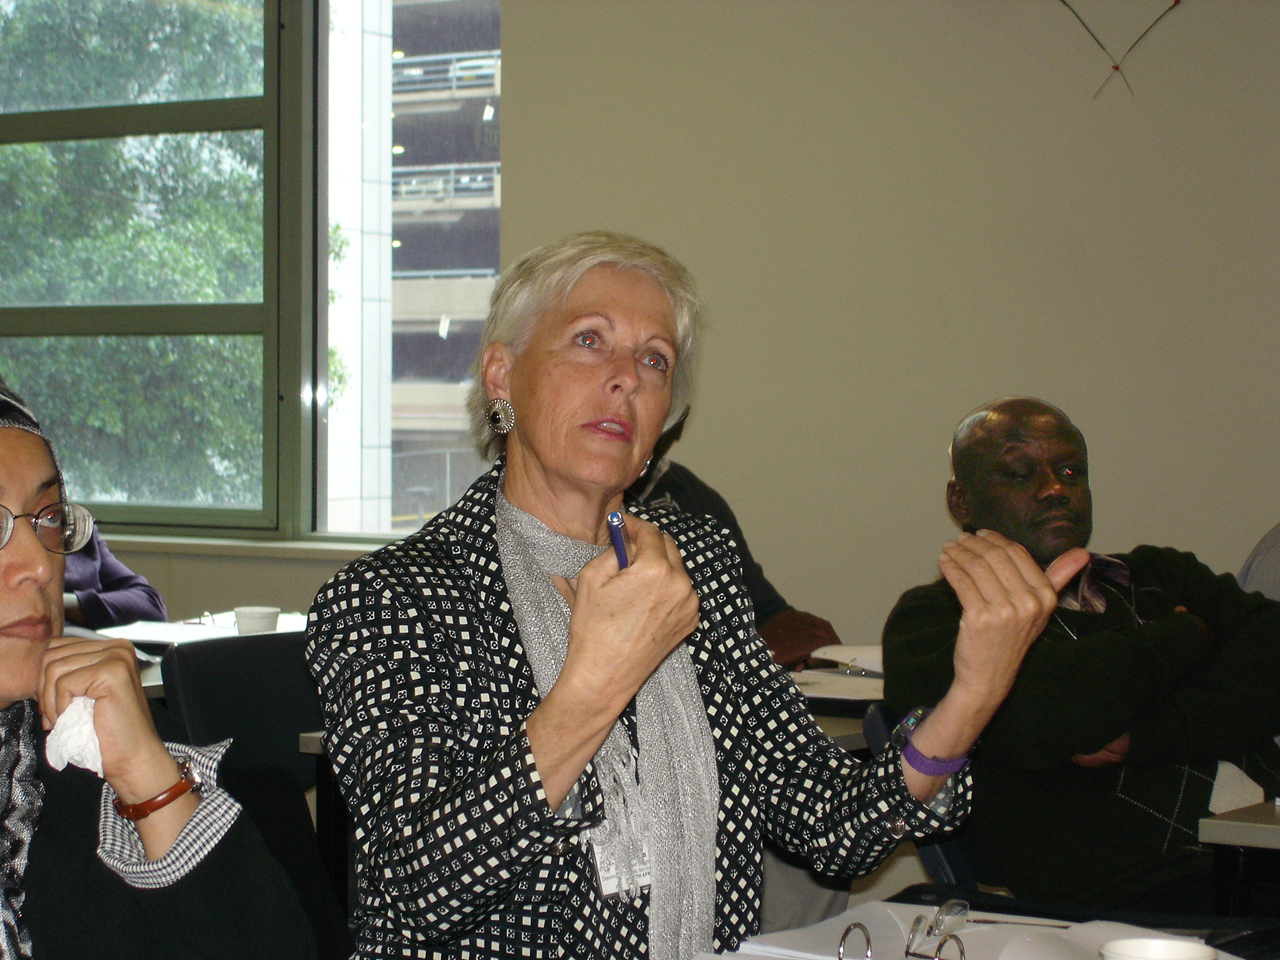 Ms. Sally Ann Rowney, Chief Director, Dept. of Public Service & Administration Pretoria, SOUTH AFRICA during an interactive session.